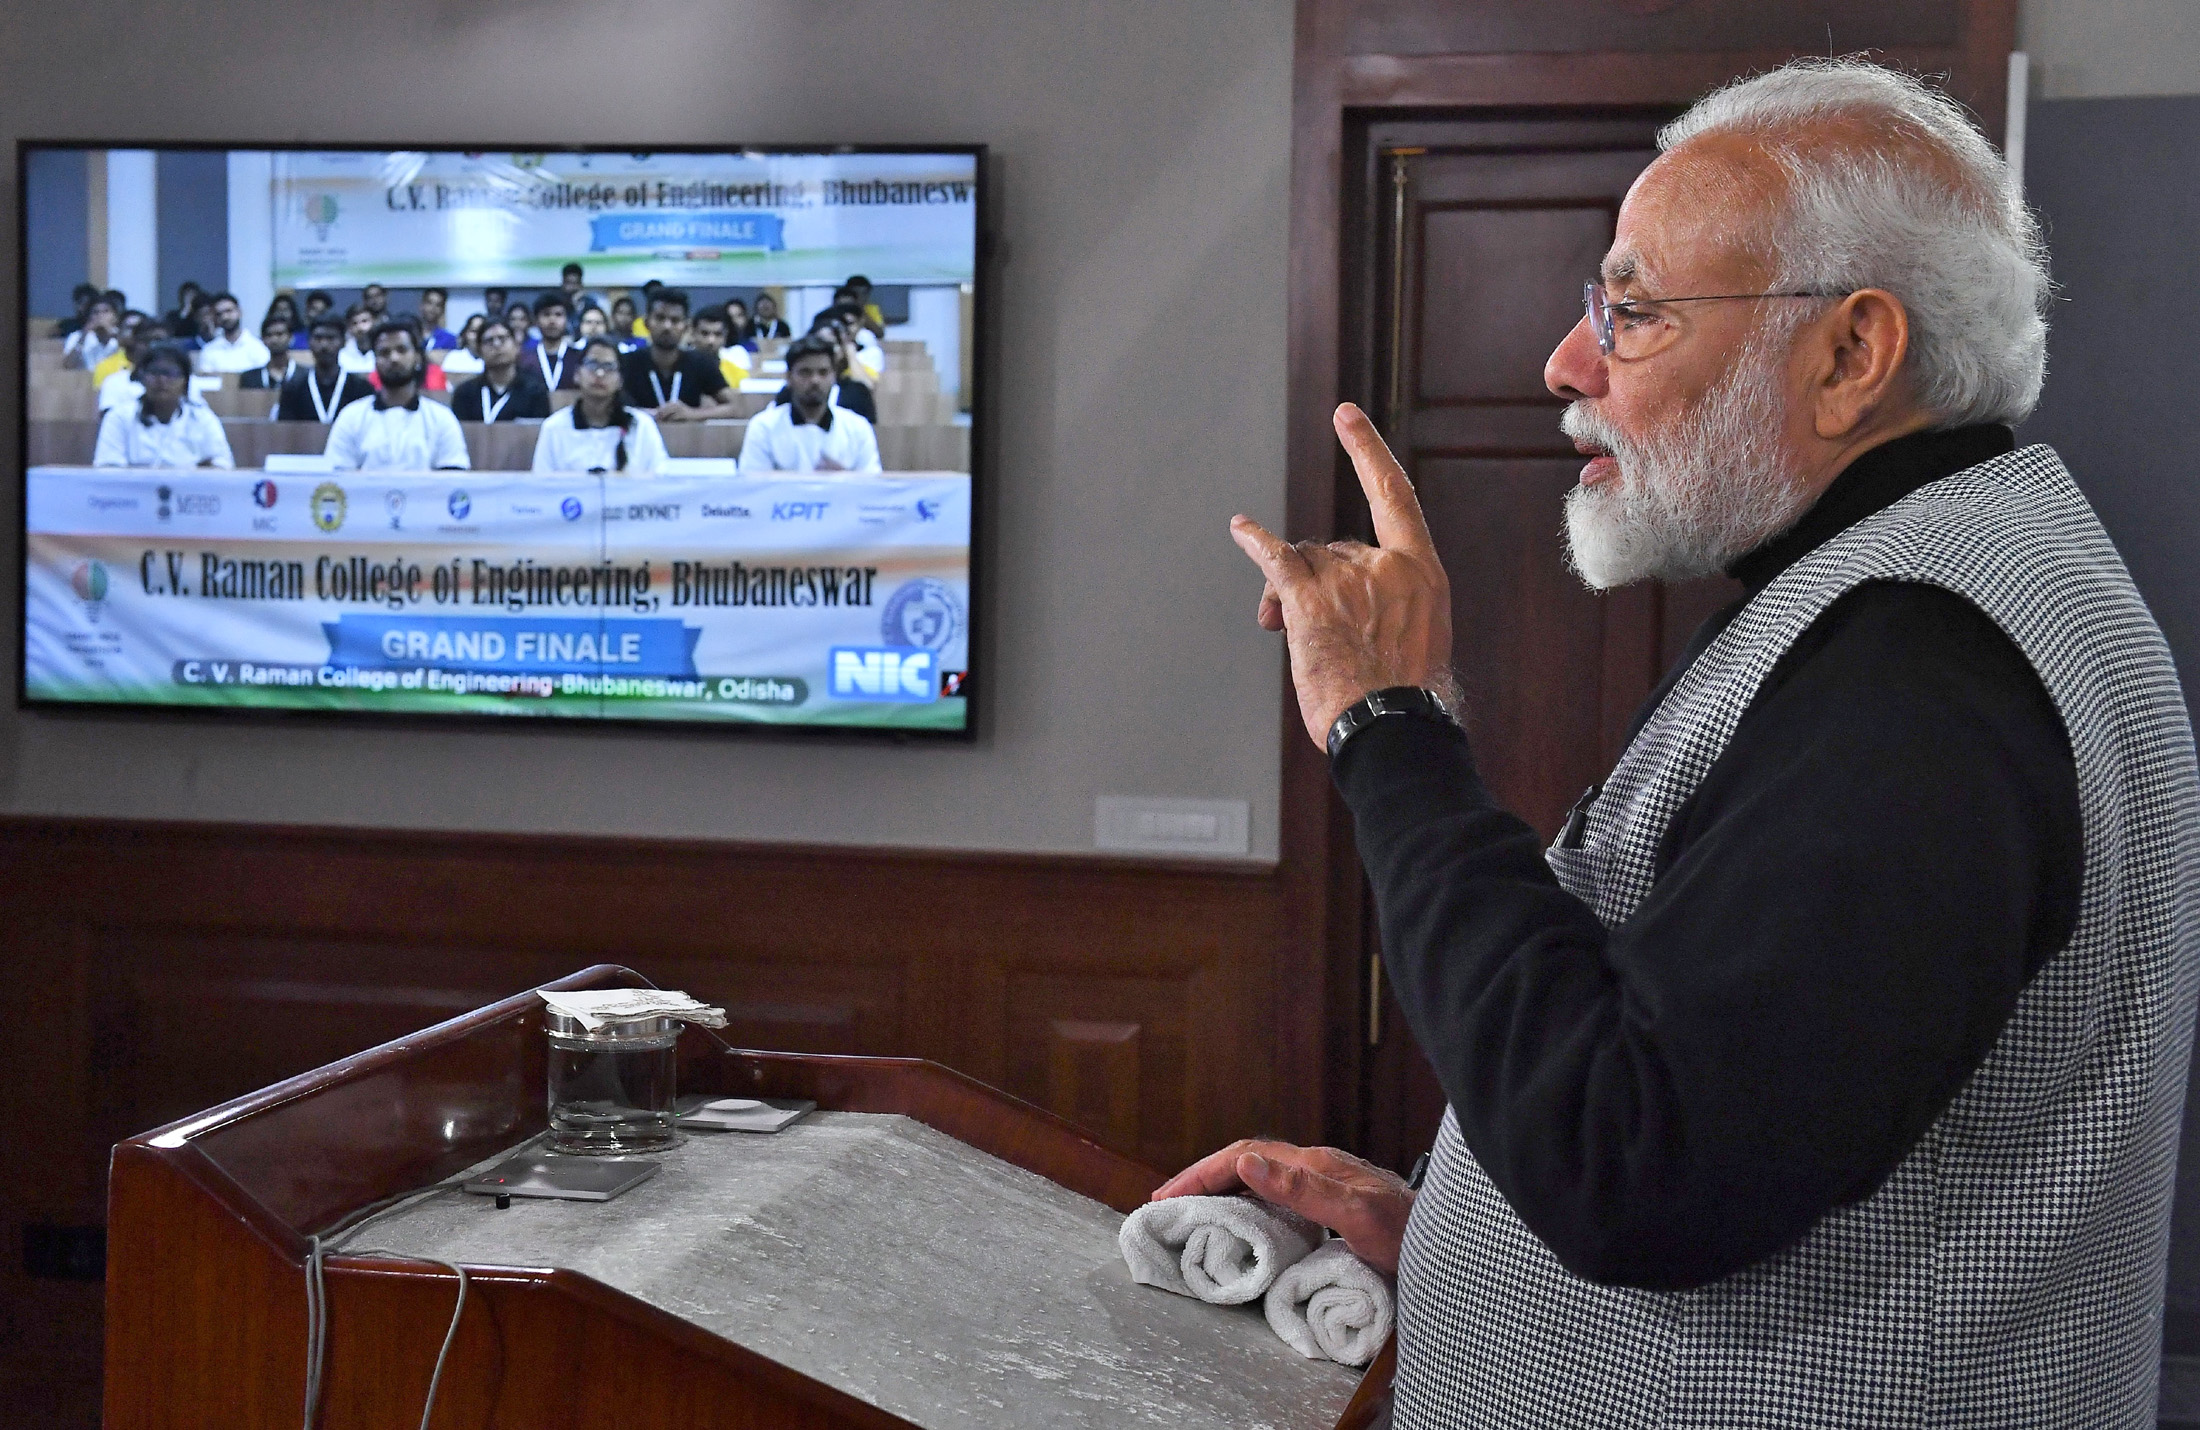 The Prime Minister, Shri Narendra Modi interacting with the students at the Grand Finale of the Smart India Hackathon, via Video Conference, in New Delhi on March 02, 2019.